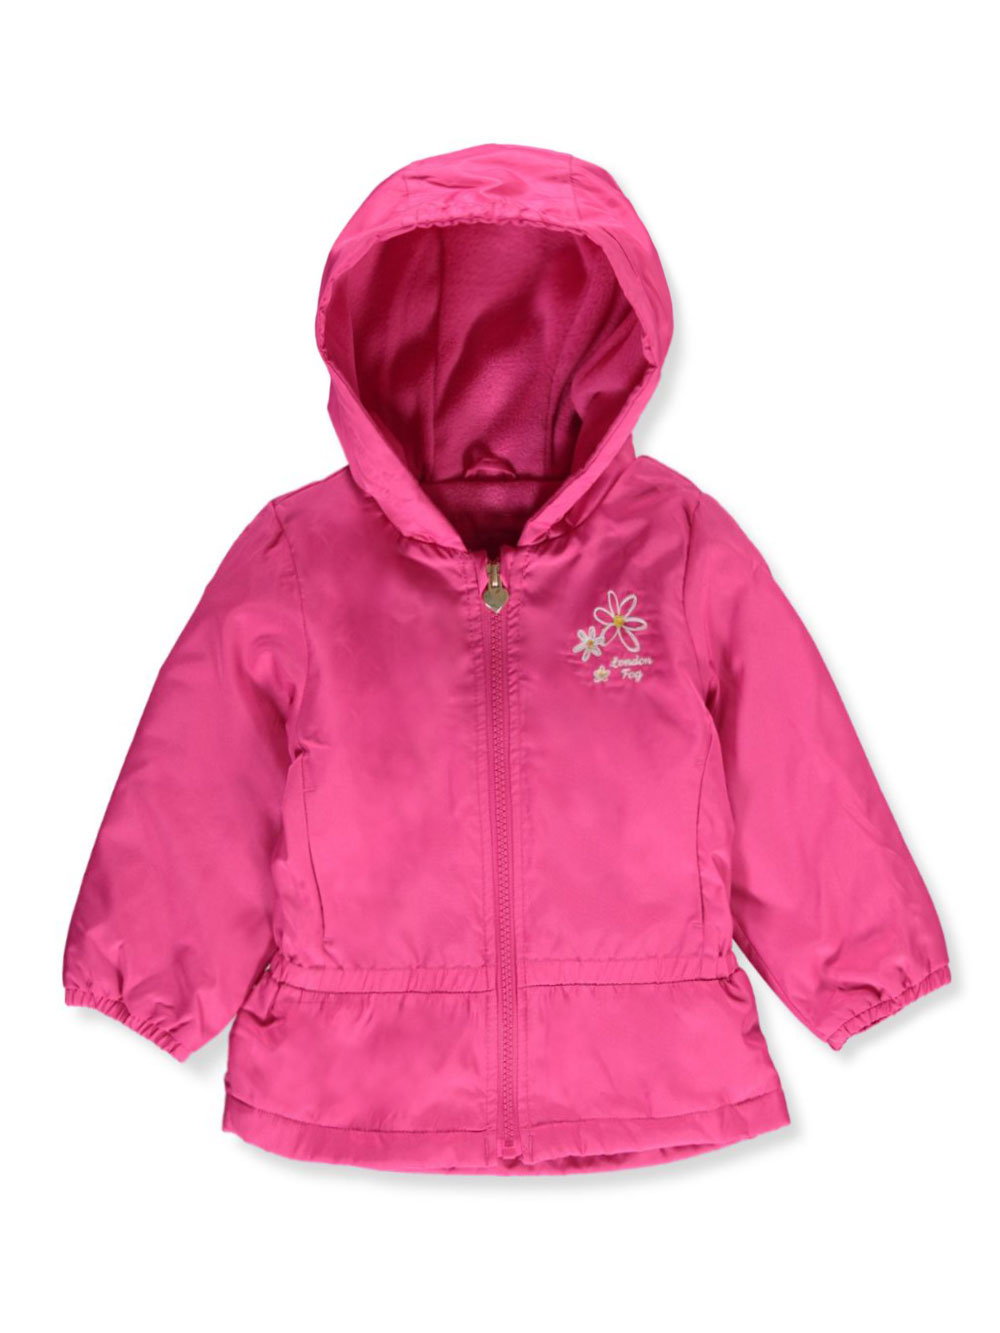 Girls Fuchsia Jackets